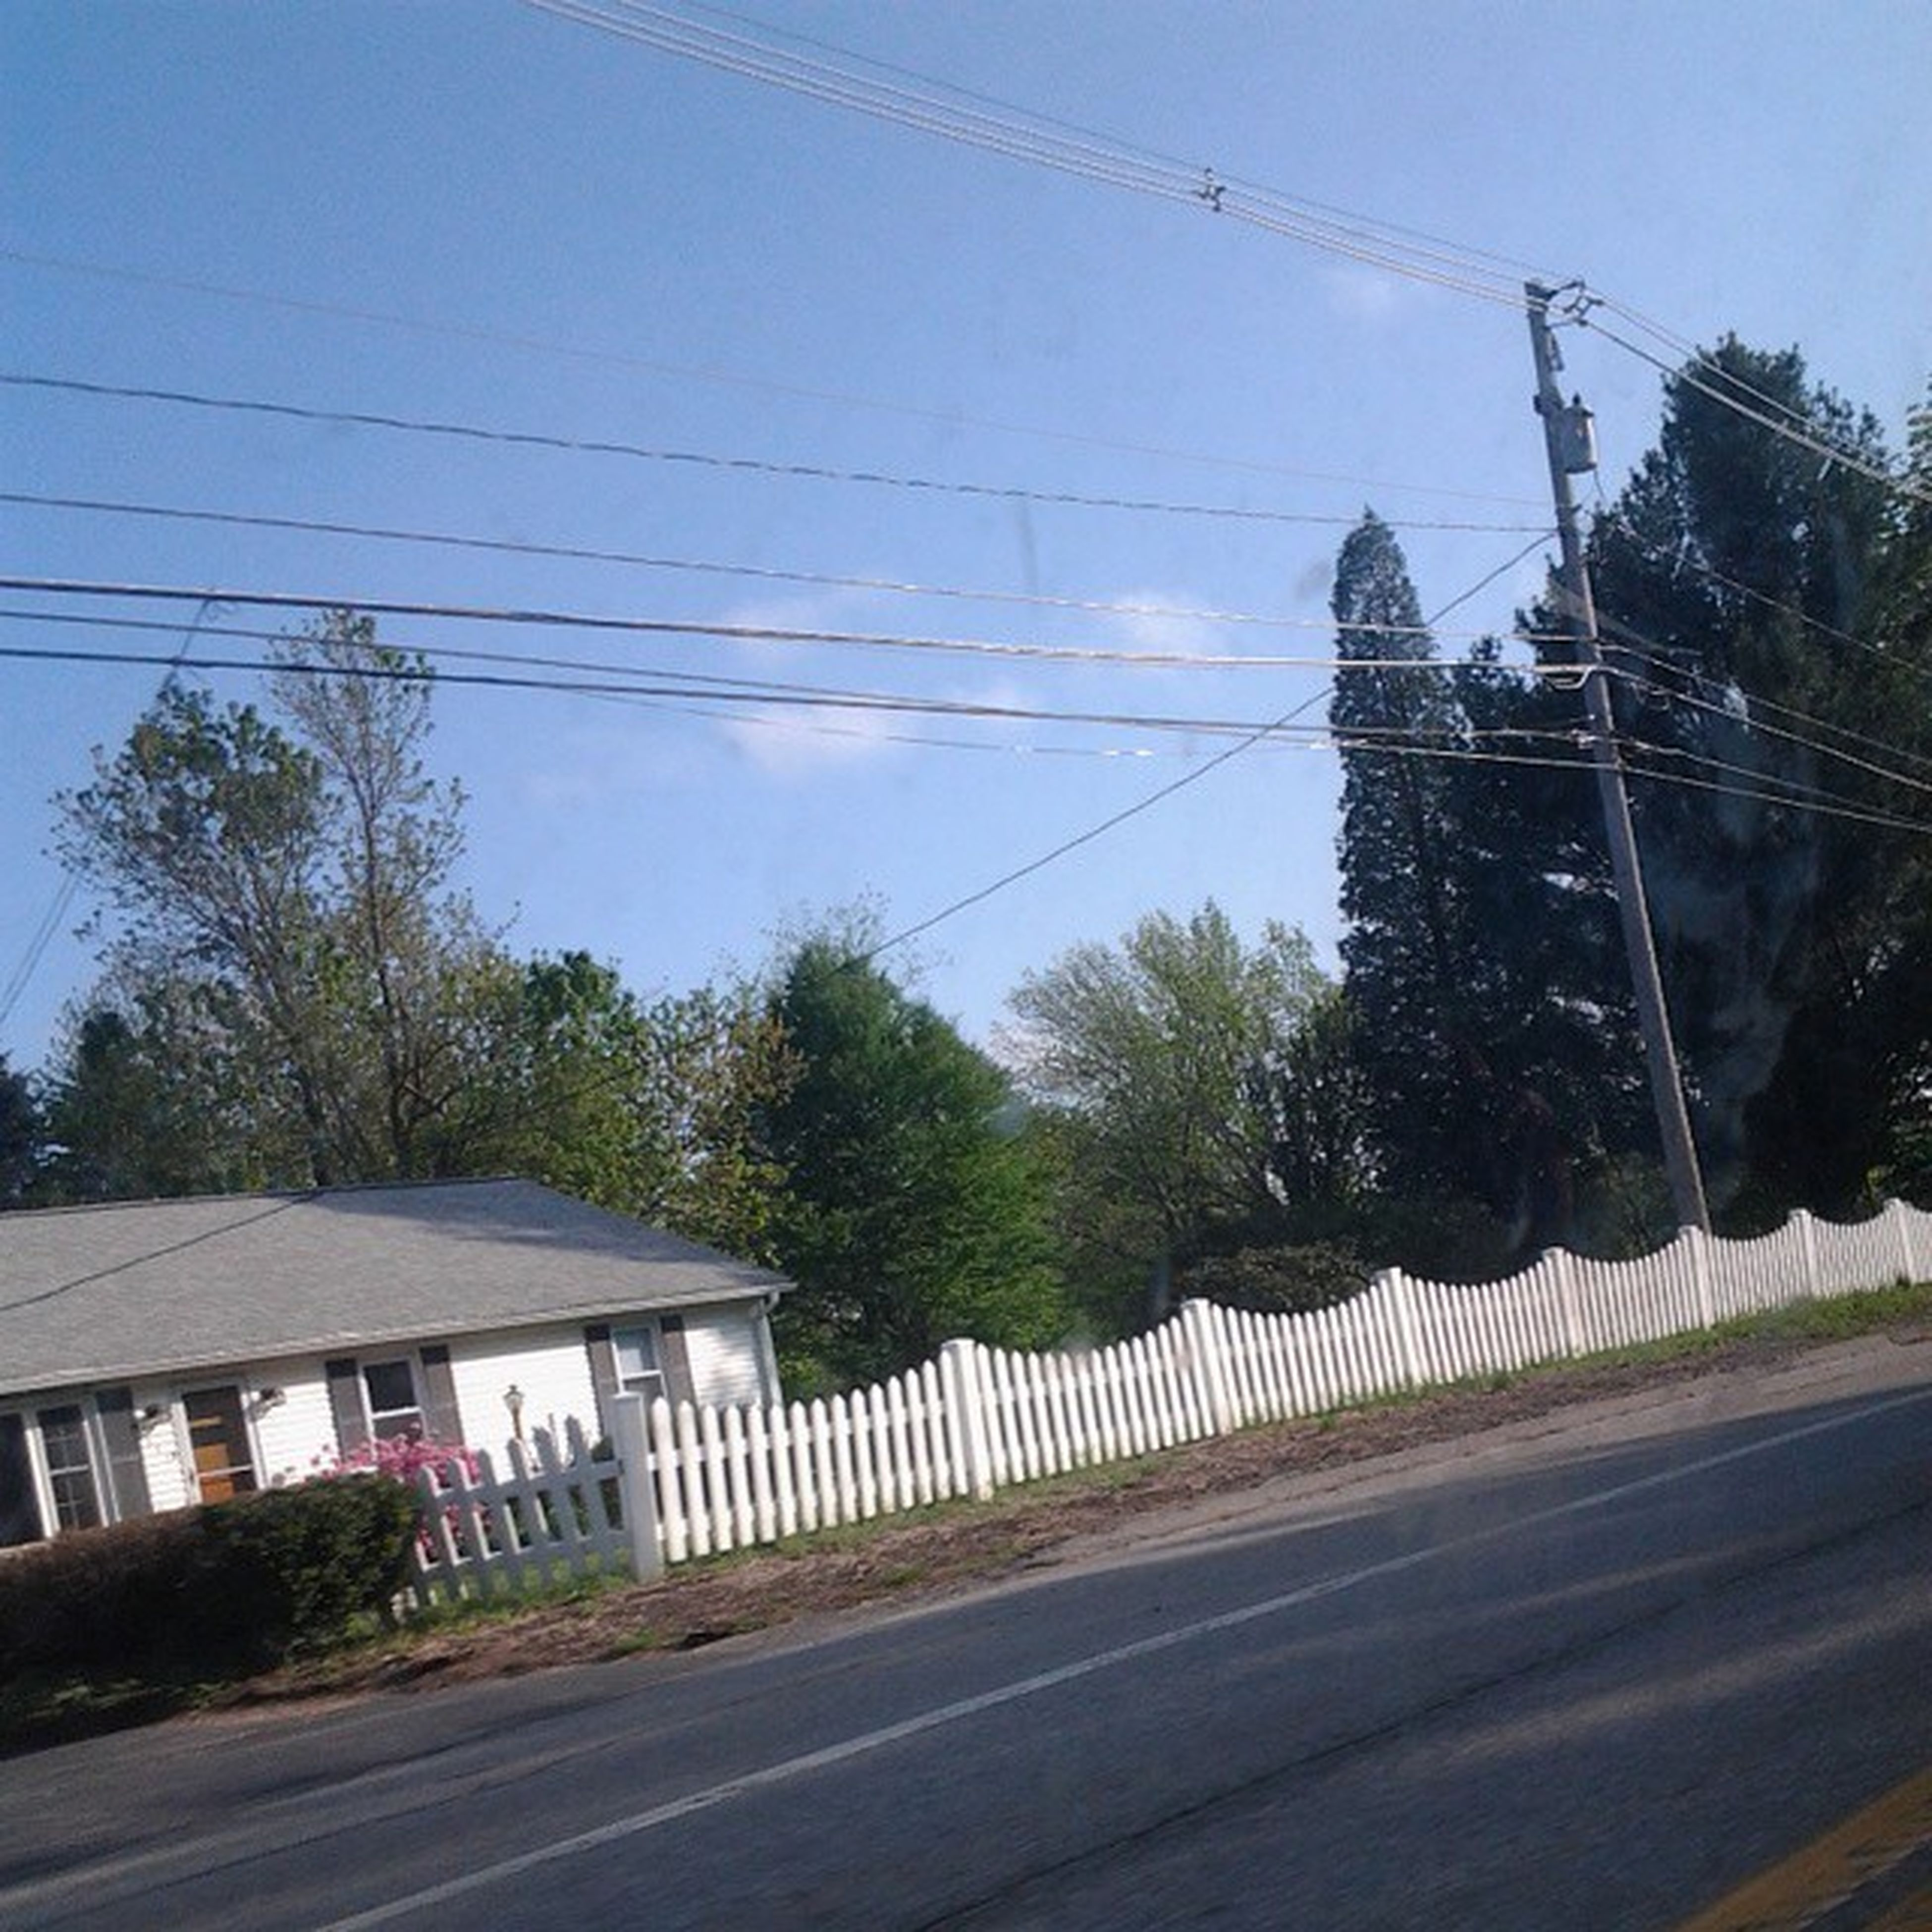 power line, transportation, built structure, architecture, electricity pylon, building exterior, road, clear sky, tree, cable, connection, street, sky, power supply, railroad track, electricity, power cable, road marking, day, outdoors